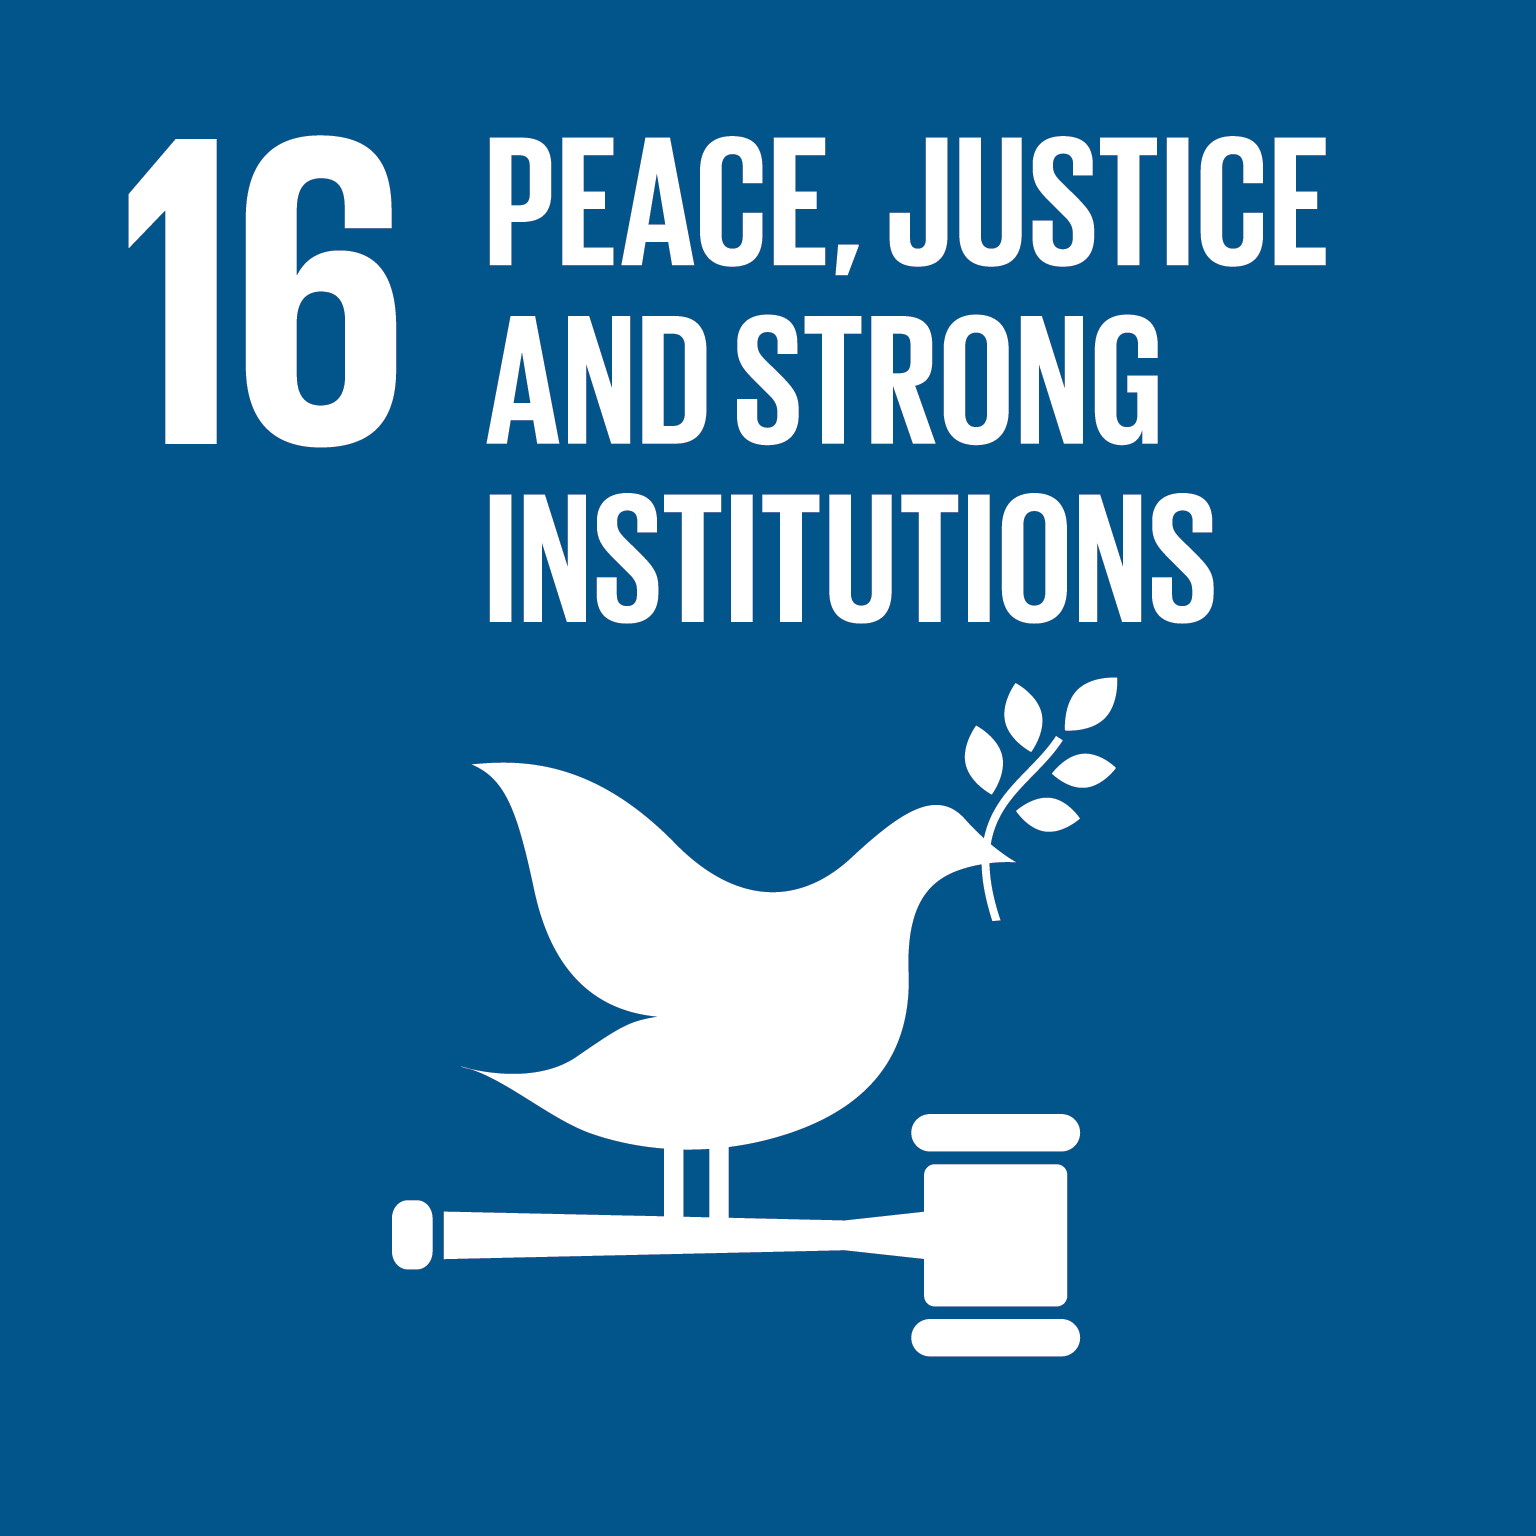 SDG 16 Peace justive and strong institutions